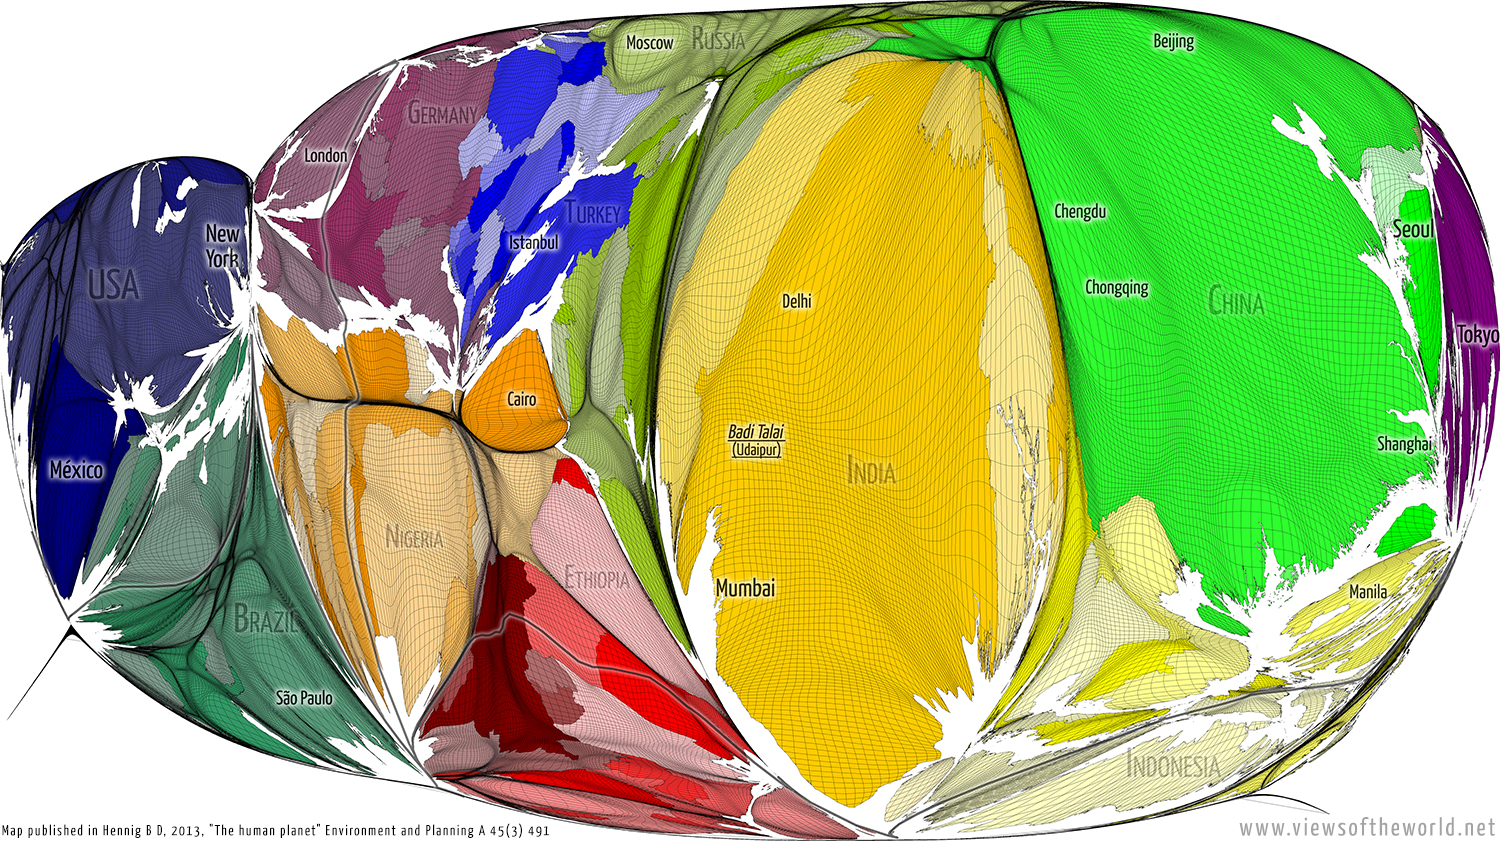 Views of the World worldmapping beyond mere description – Map World Real Proportions